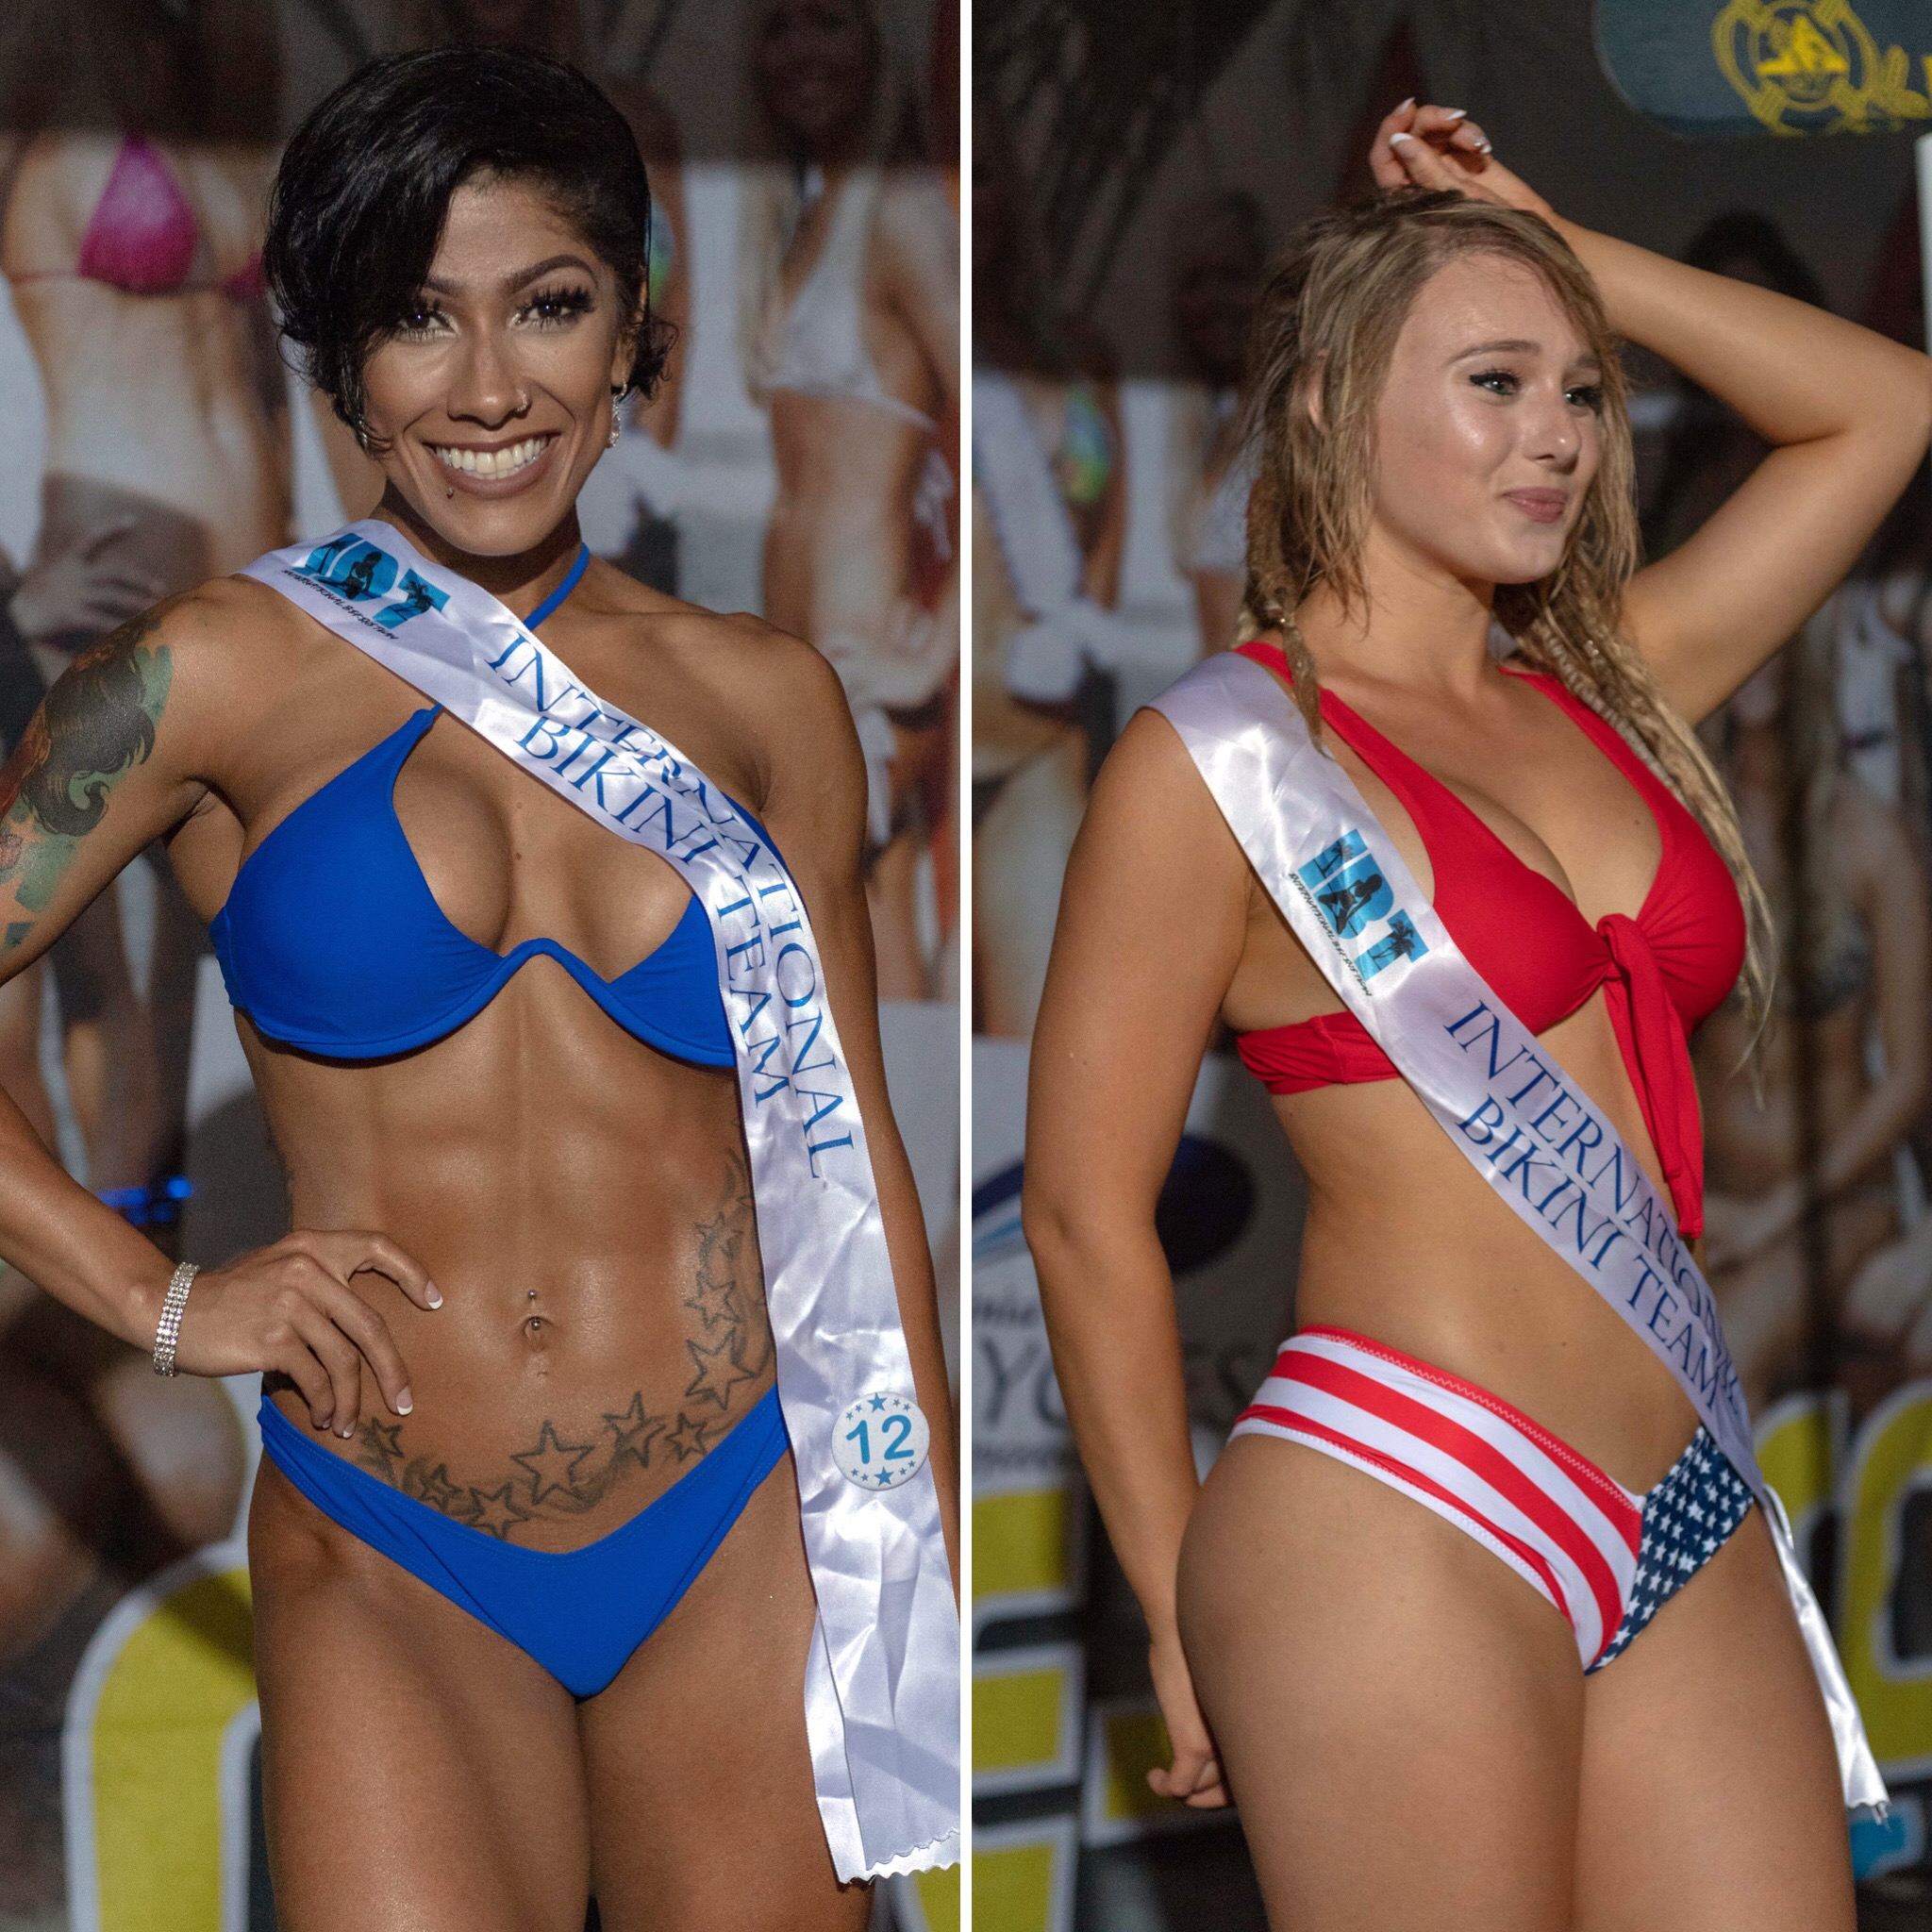 Preliminary Round 5 of the 2018 @coastaledge Miss ECSC Pageant held at @bluepetesrestaurant Presented by @pacificobeer DoctorStonersVodka ALT 105.3 Chesapeake Bay Distillery iHeartRadio Virginia Beach Nightlife International Bikini TeamThe top 4 advanced to the semi-finals in August at the 56th Annual Coastal Edge @ecscsurf Presented by Vans and Fueled by @monsterenergy